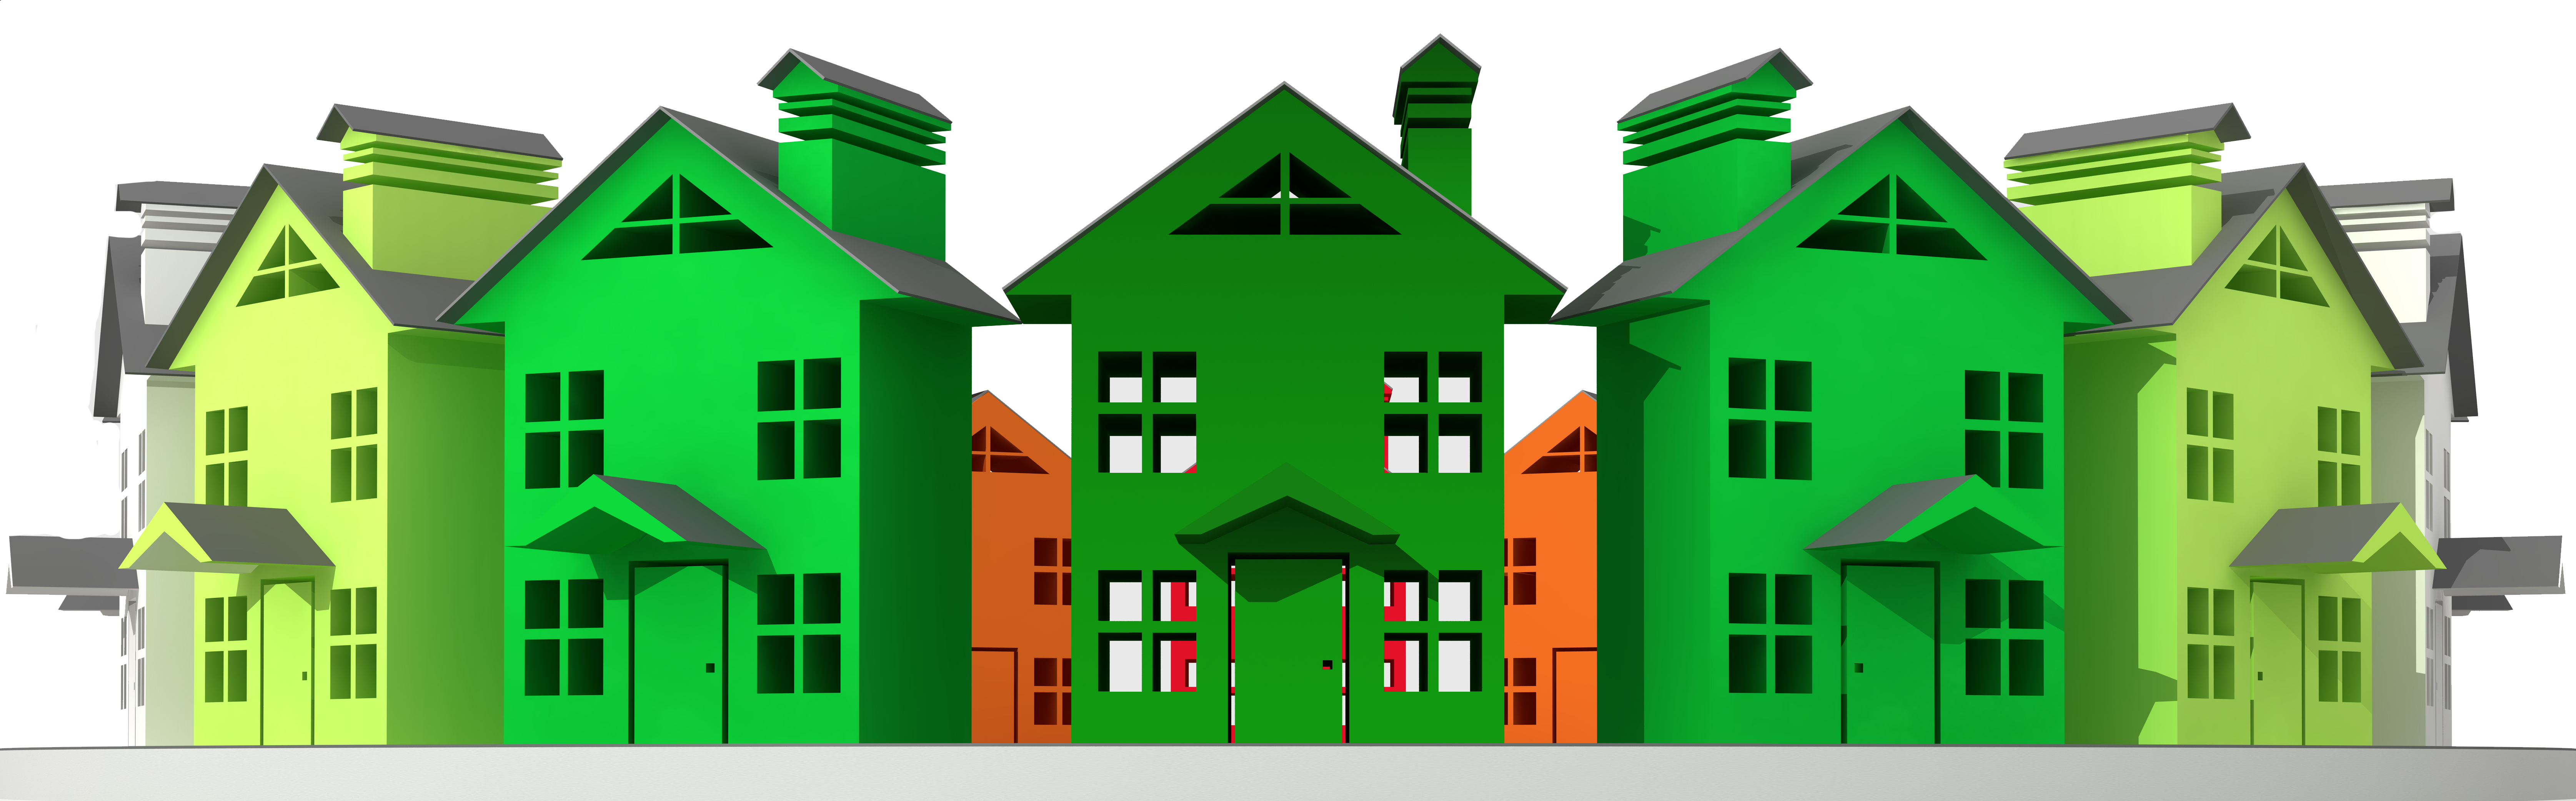 Multi construction request multifamily. House clipart family